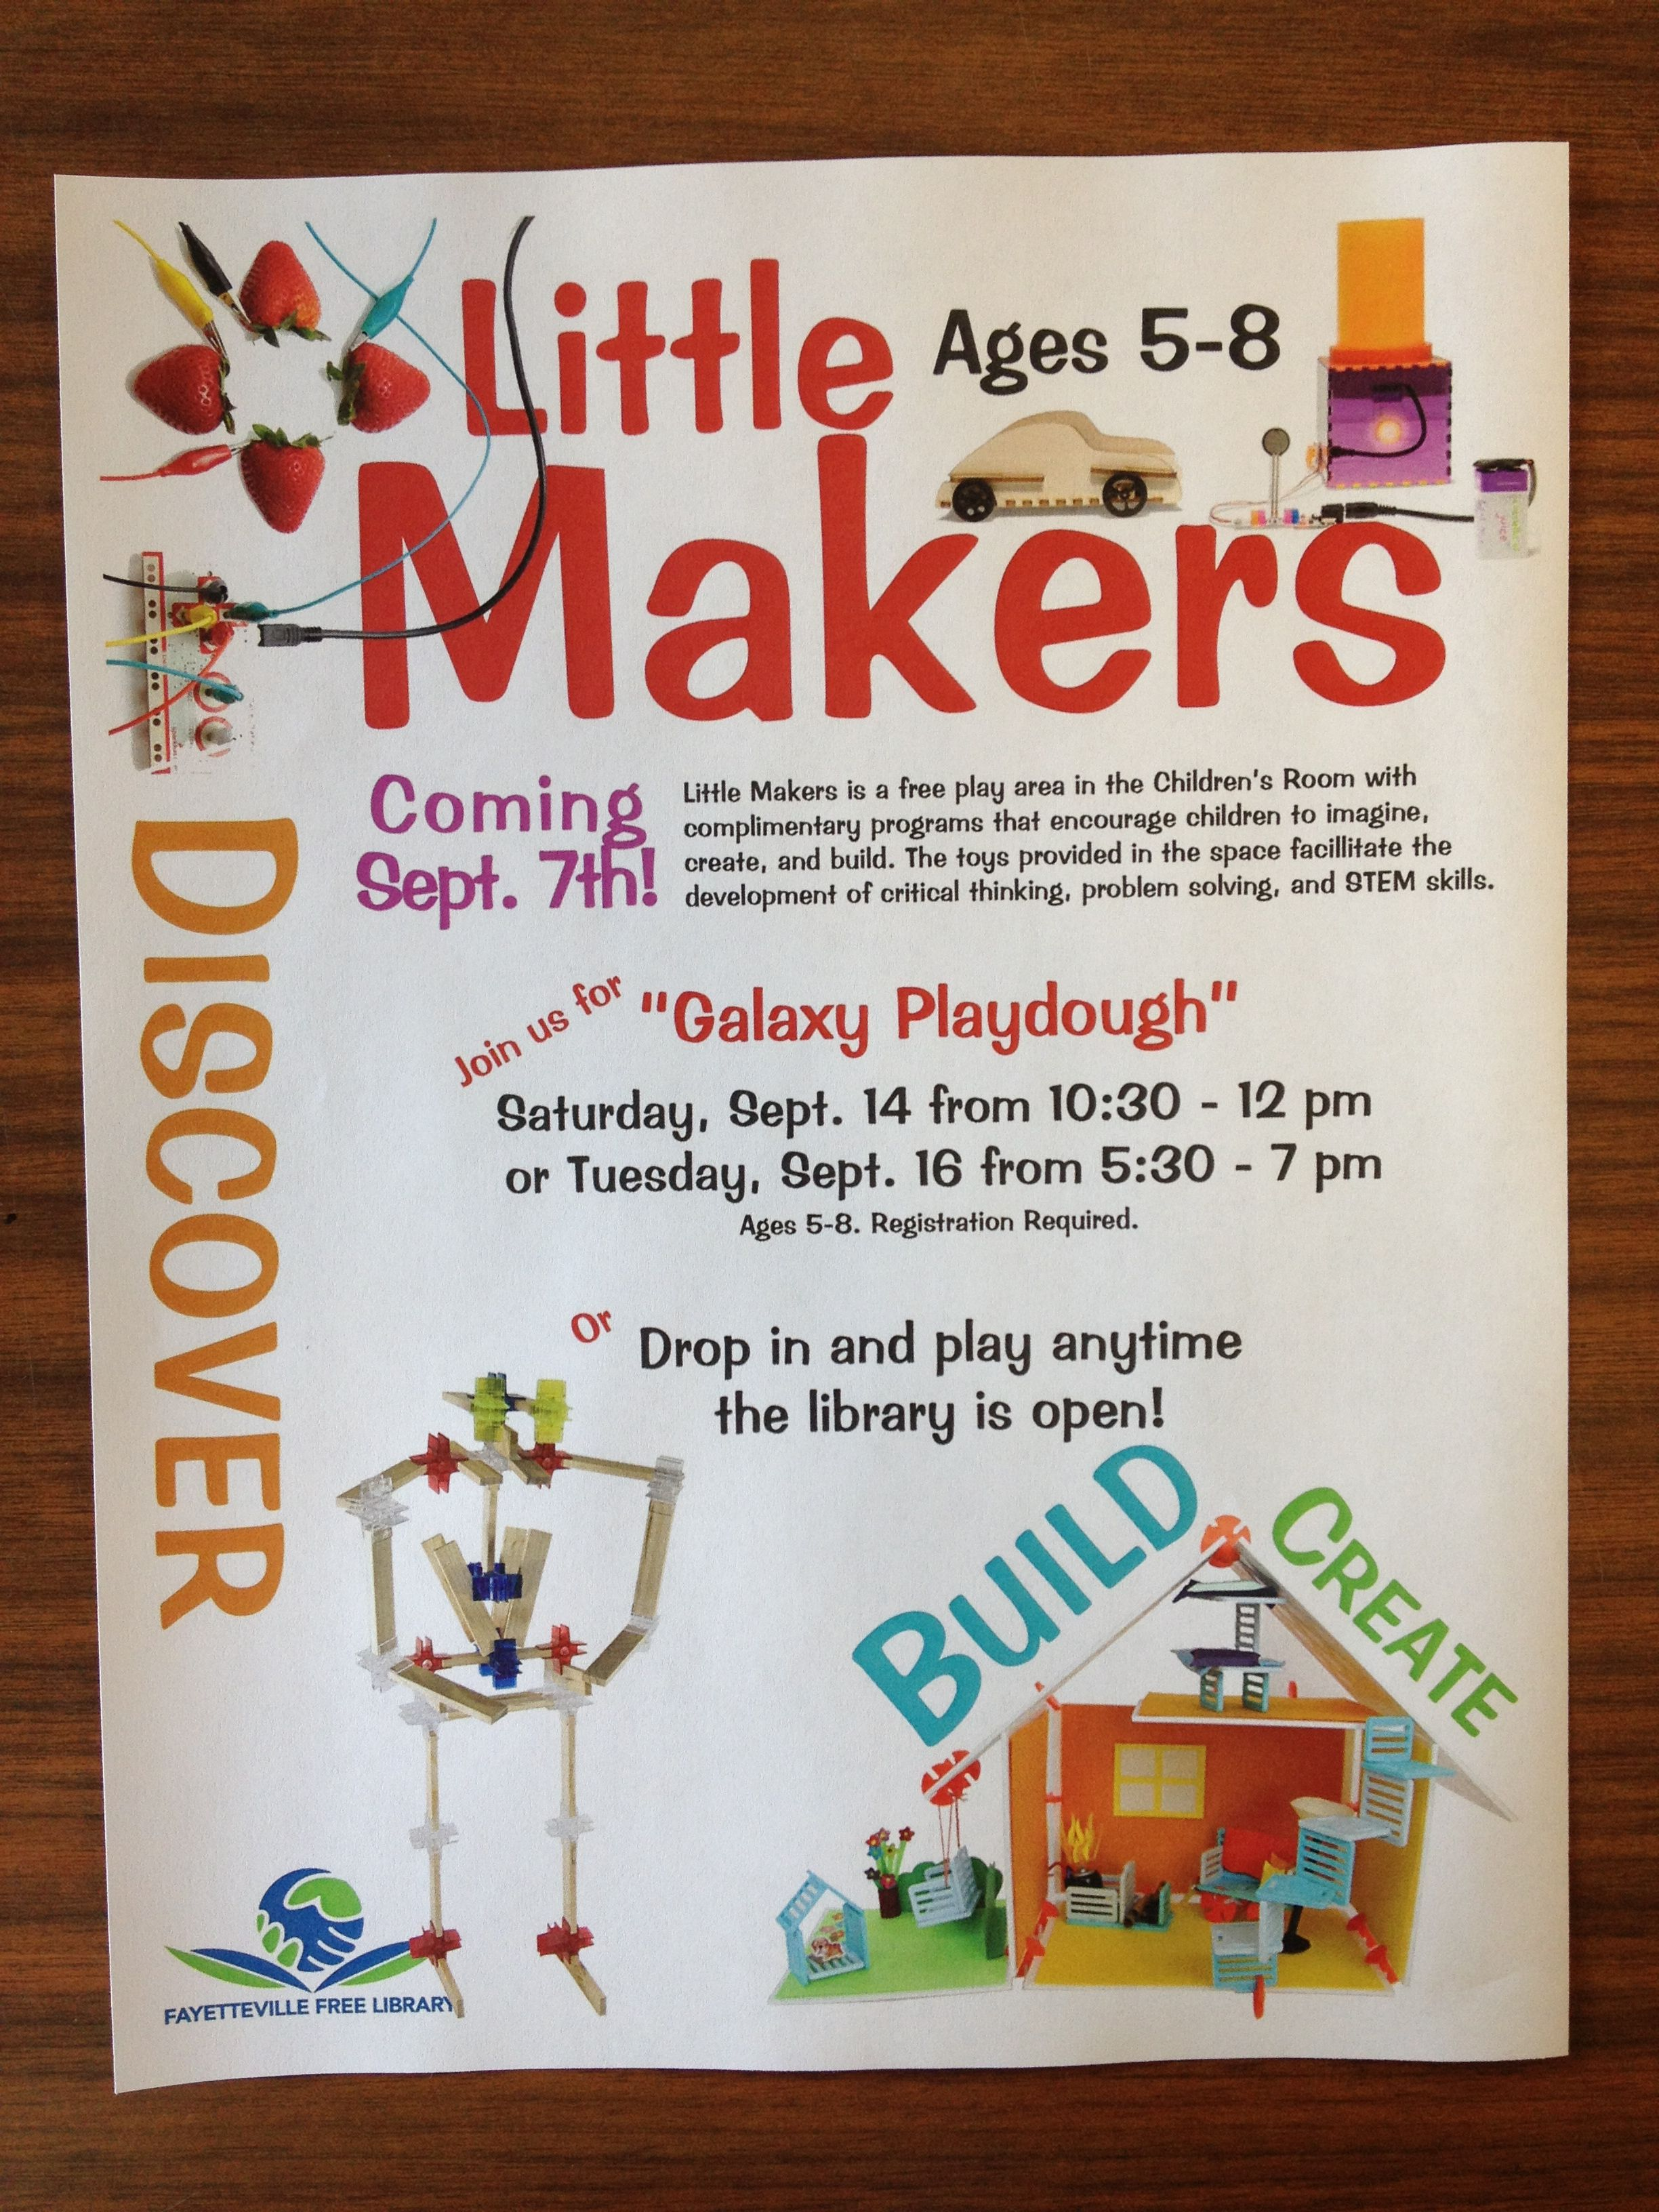 Promotional Flyer Little Makers. Tinkering Club Library Programs Programming